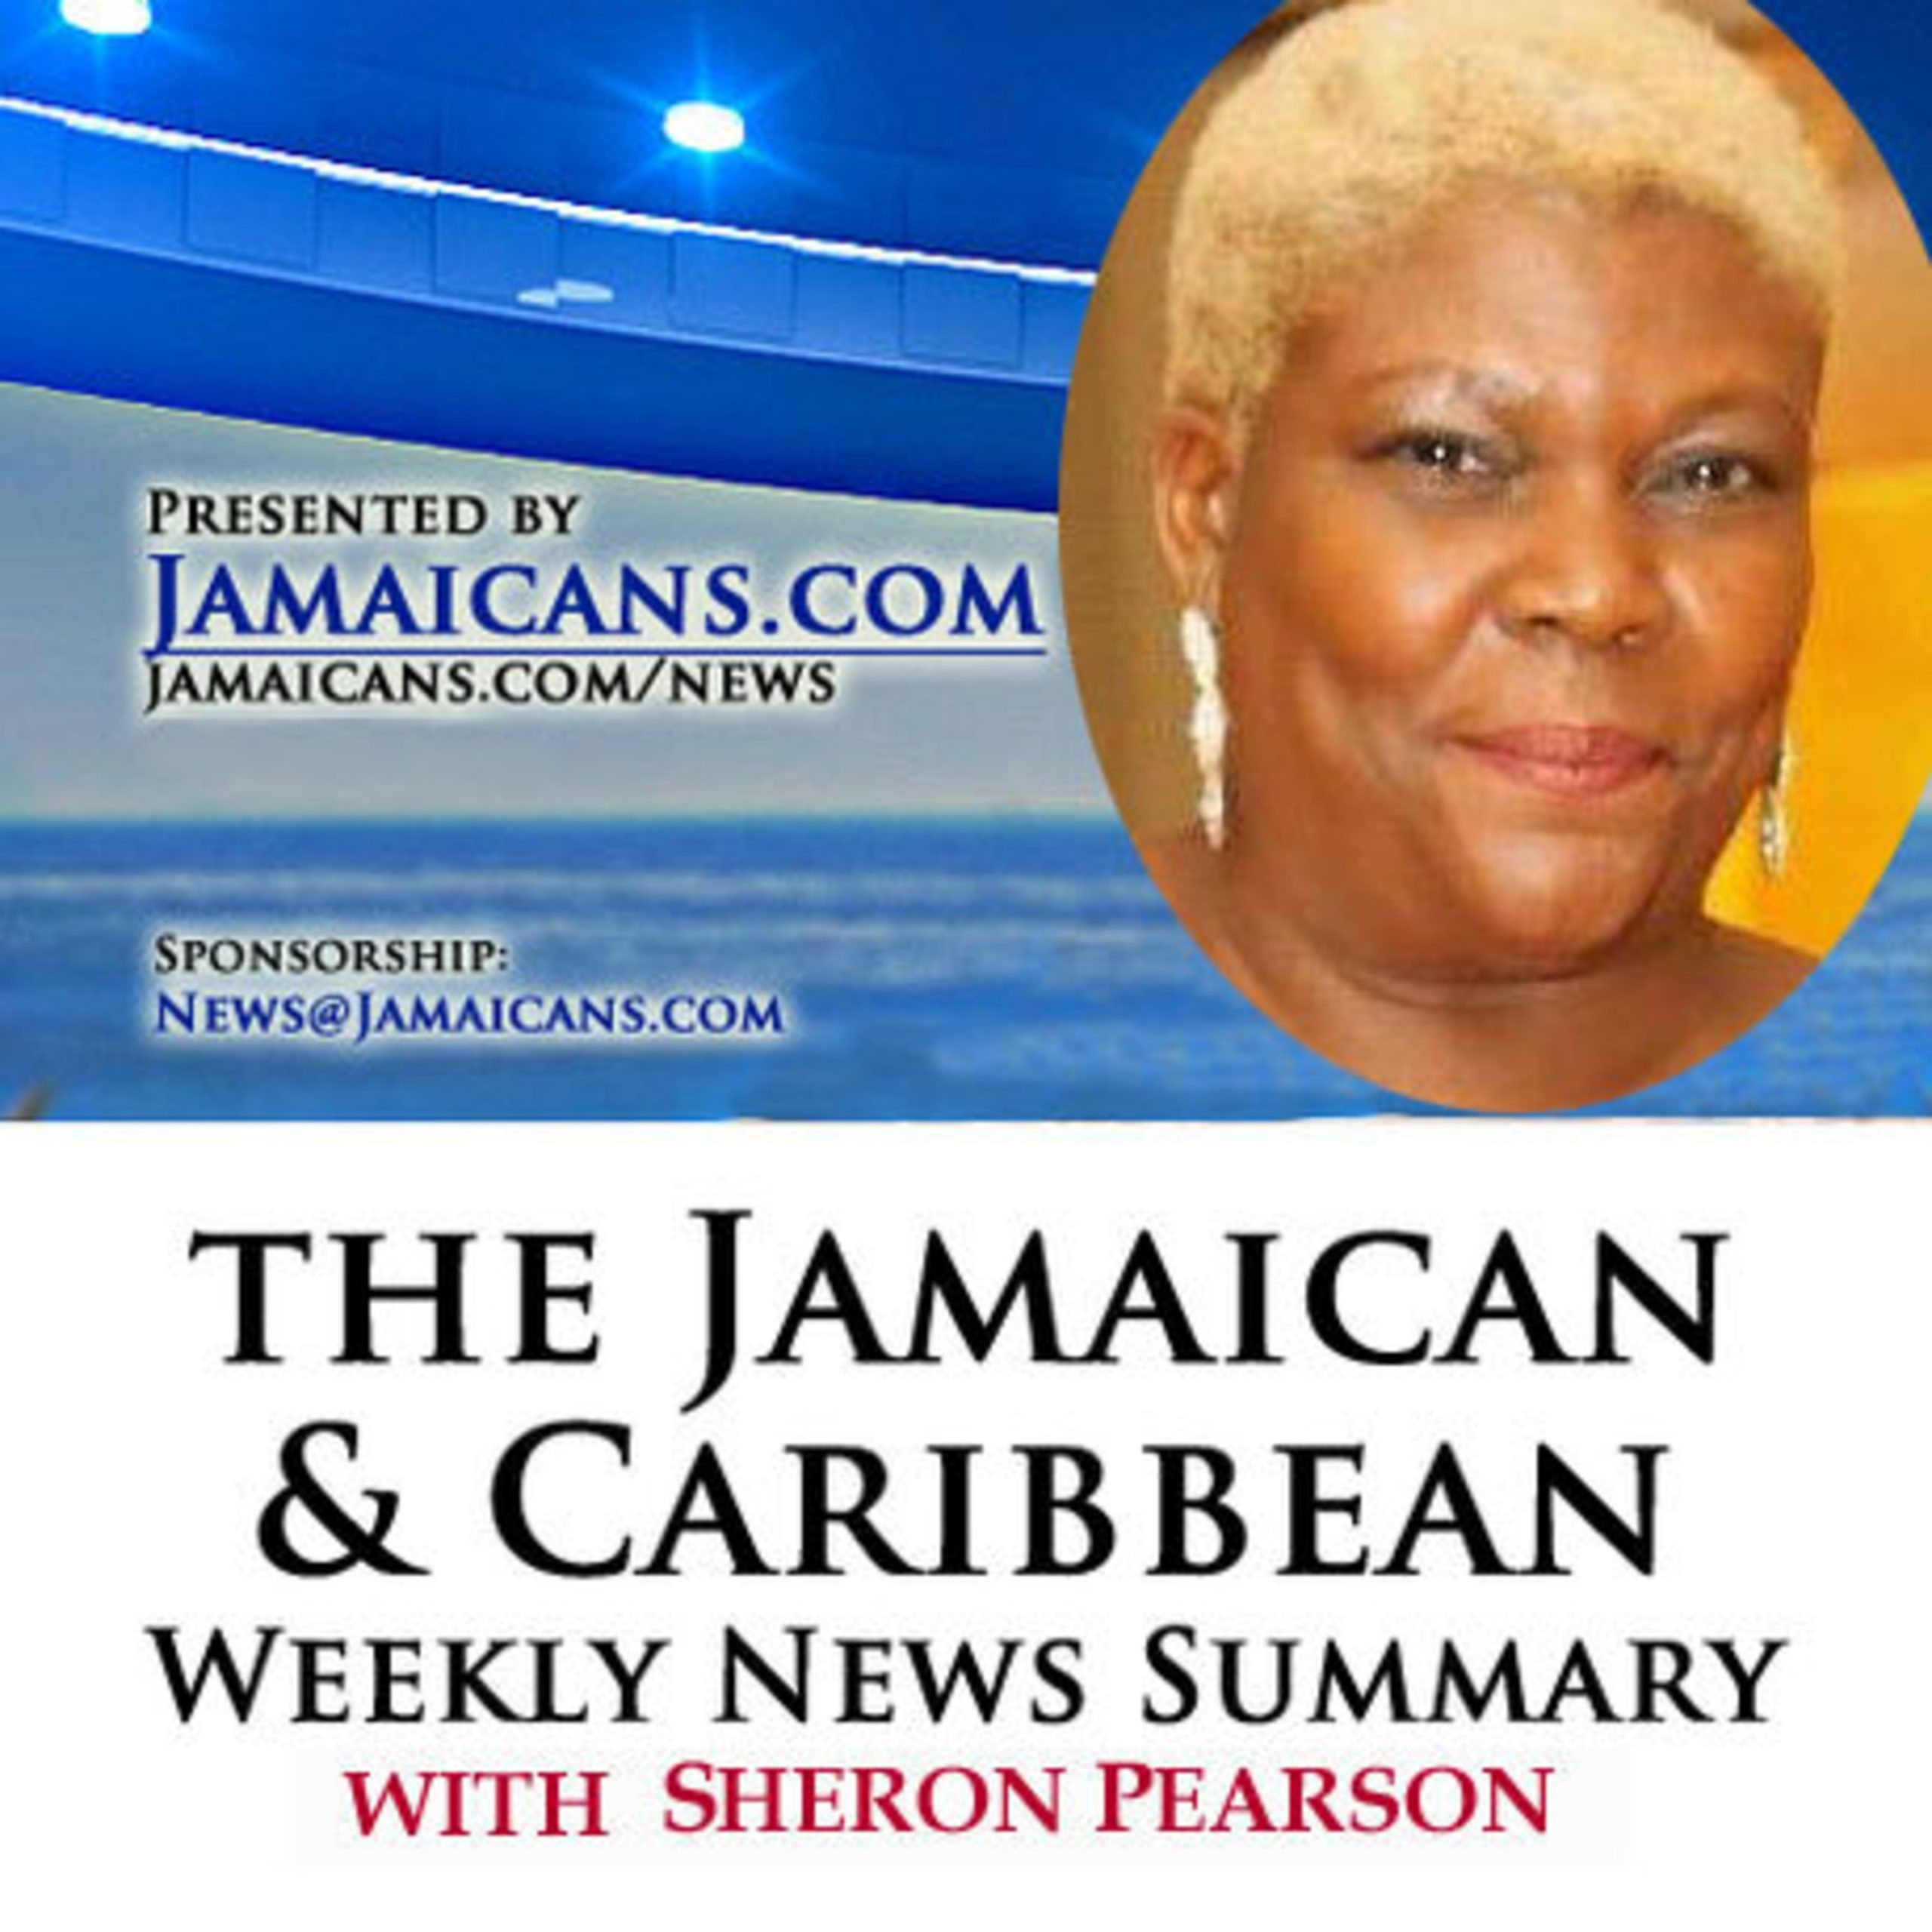 Listen to the Podcast of The Jamaica & Caribbean Weekly News Summary for the week ending December 27, 2019